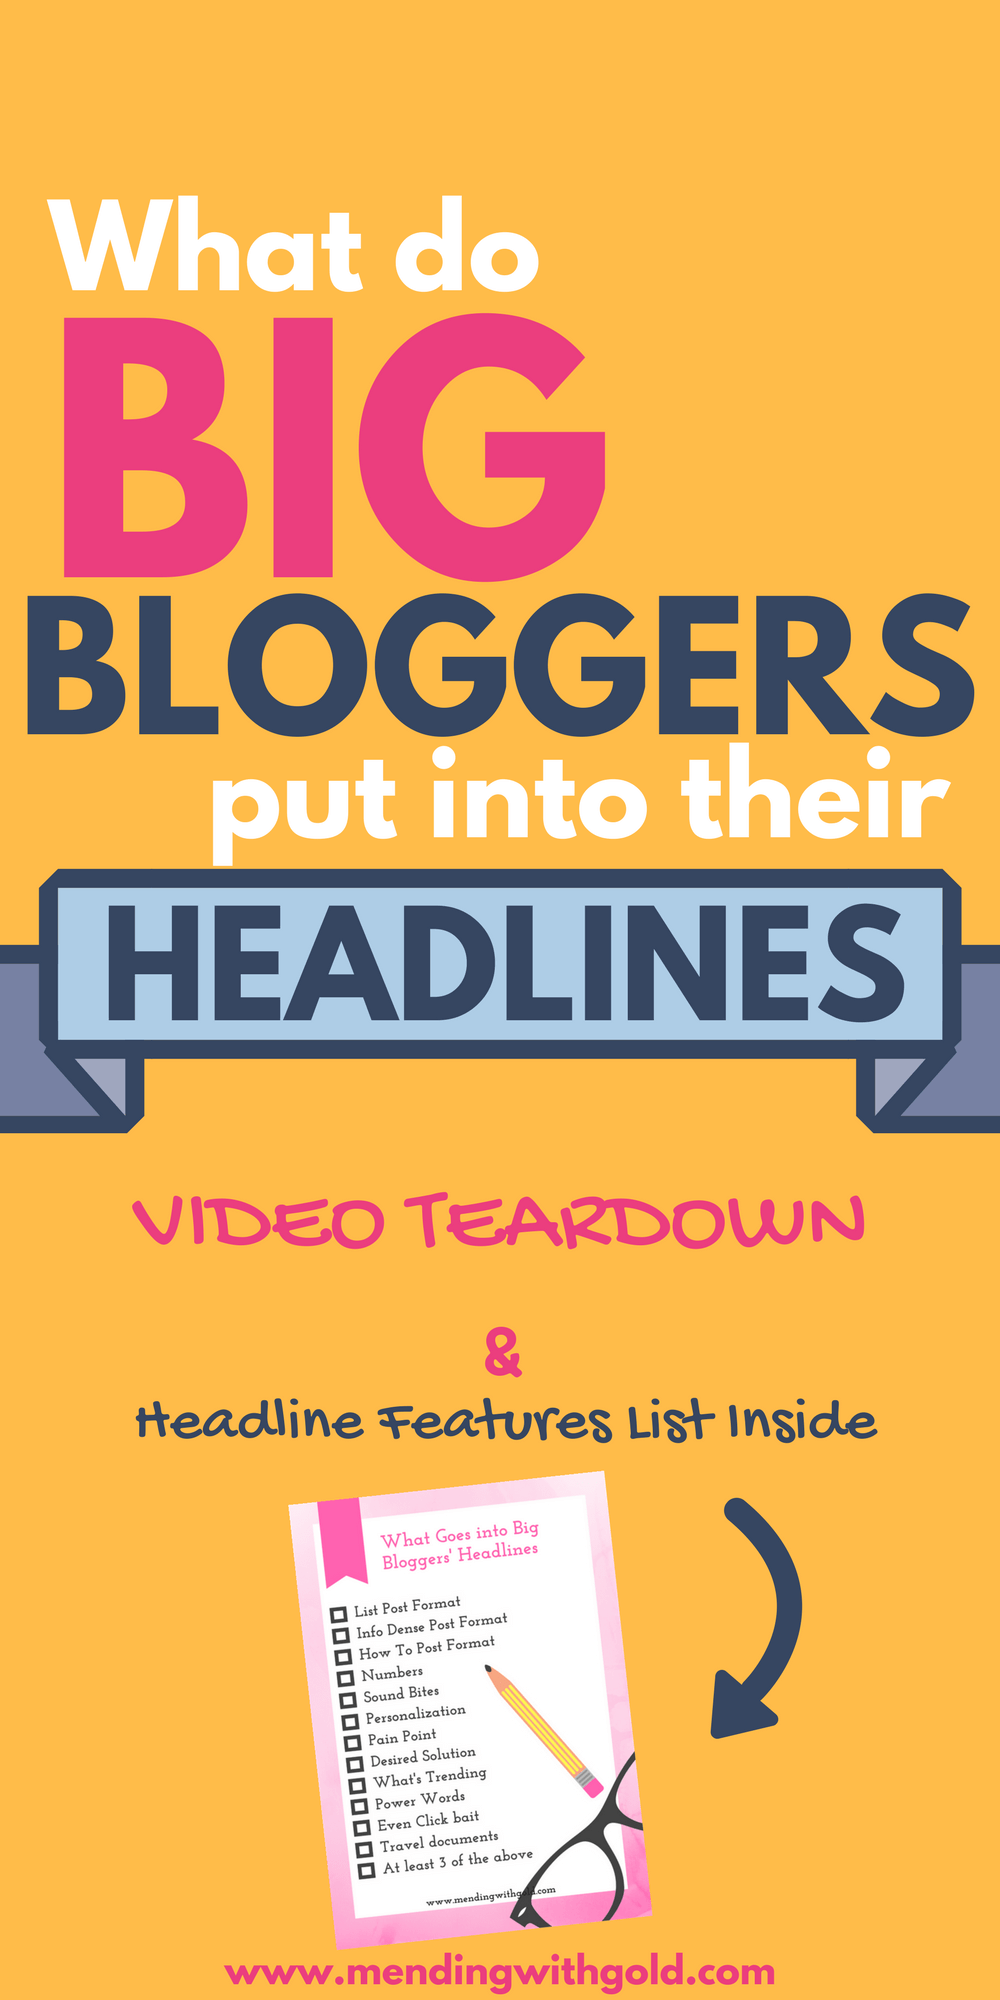 Want to know what goes into the headline or blog title of a popular post by a giant blogger? Click to check the short video teardown of 5 extremely popular blog headlines.